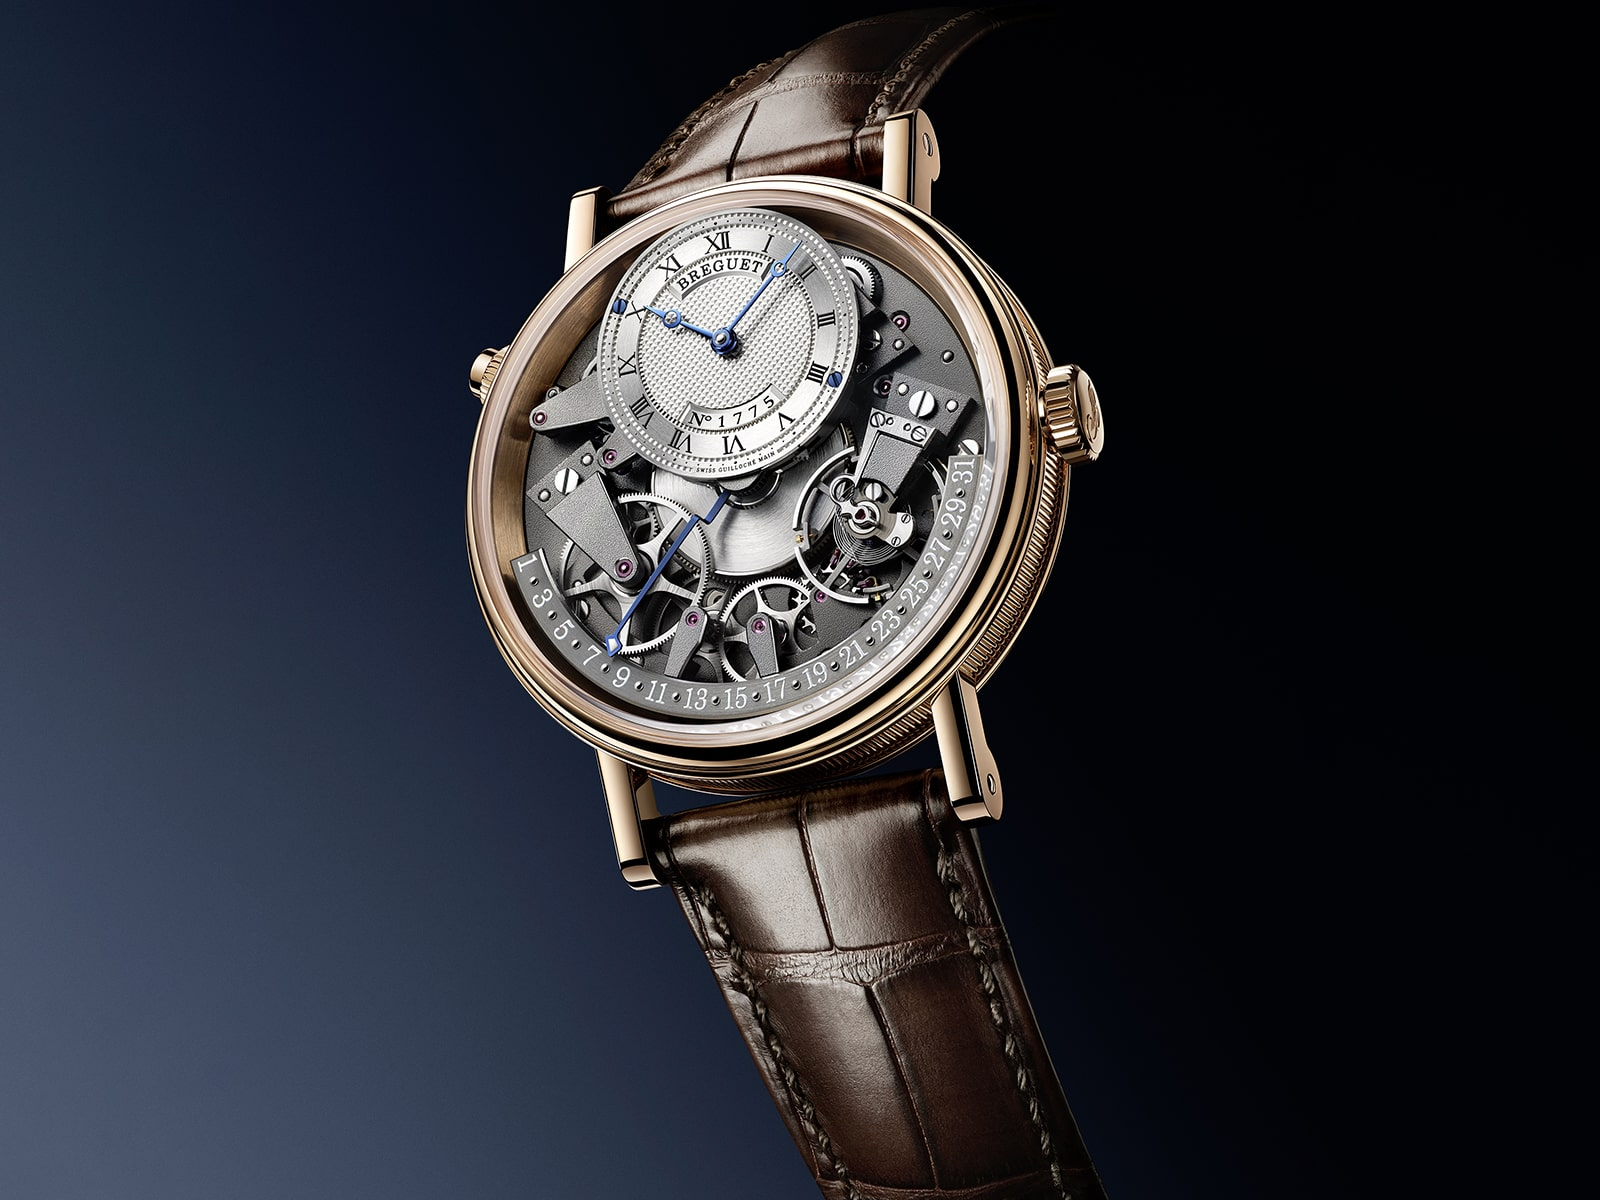 7597br-g1-9wu-breguet-tradition-quantieme-retrograde-7597-rose-gold-3.jpg